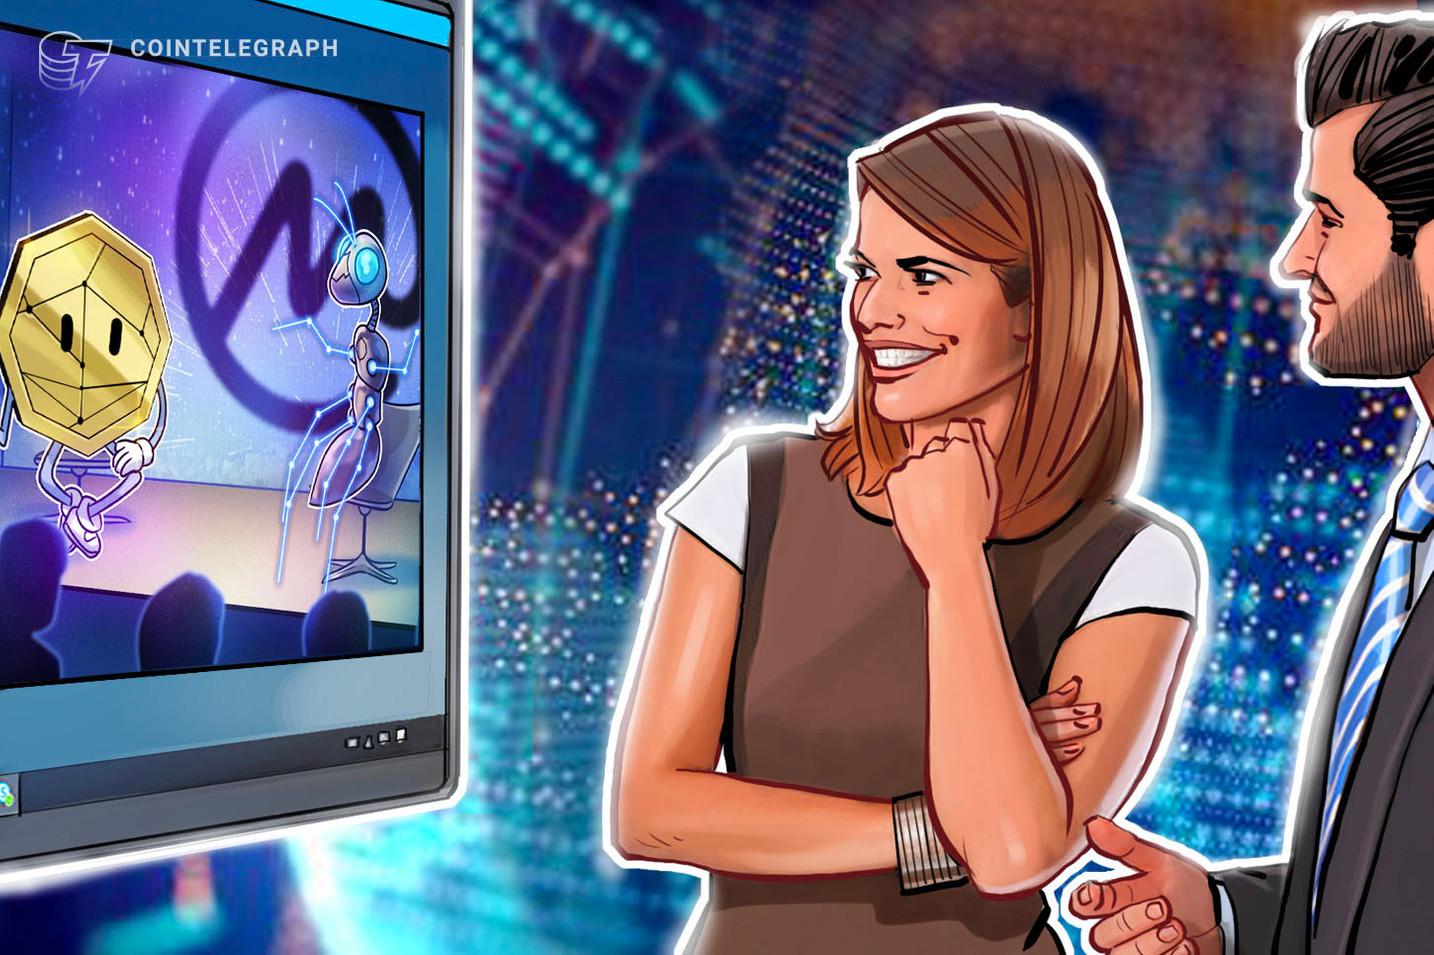 CoinMarketCap Traffic From Women & Young Adults on the Rise Amid Lockdown